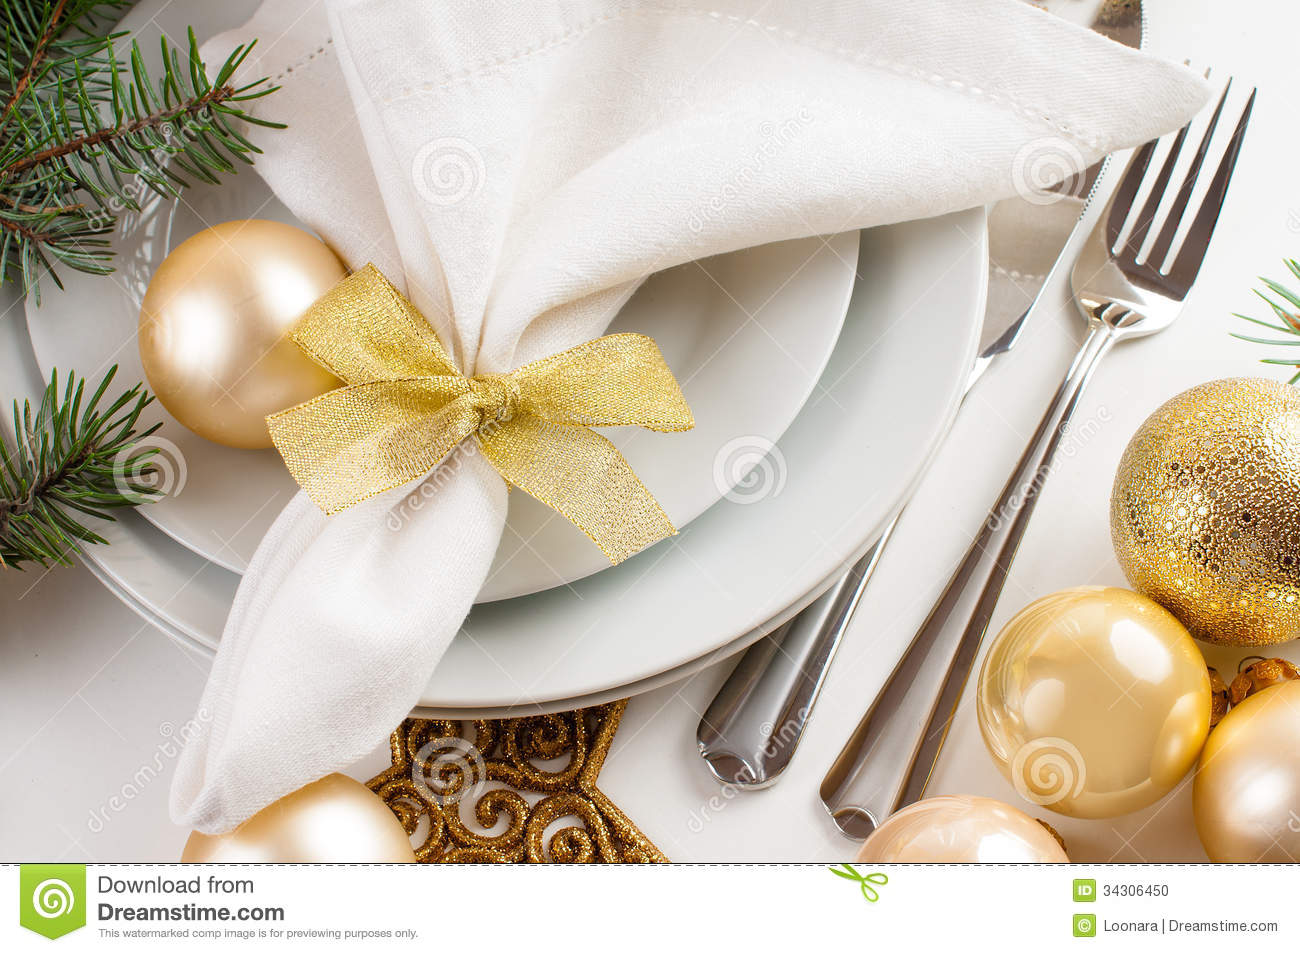 Christmas table decorations gold - Christmas Table Setting In Gold Tones Stock Photo